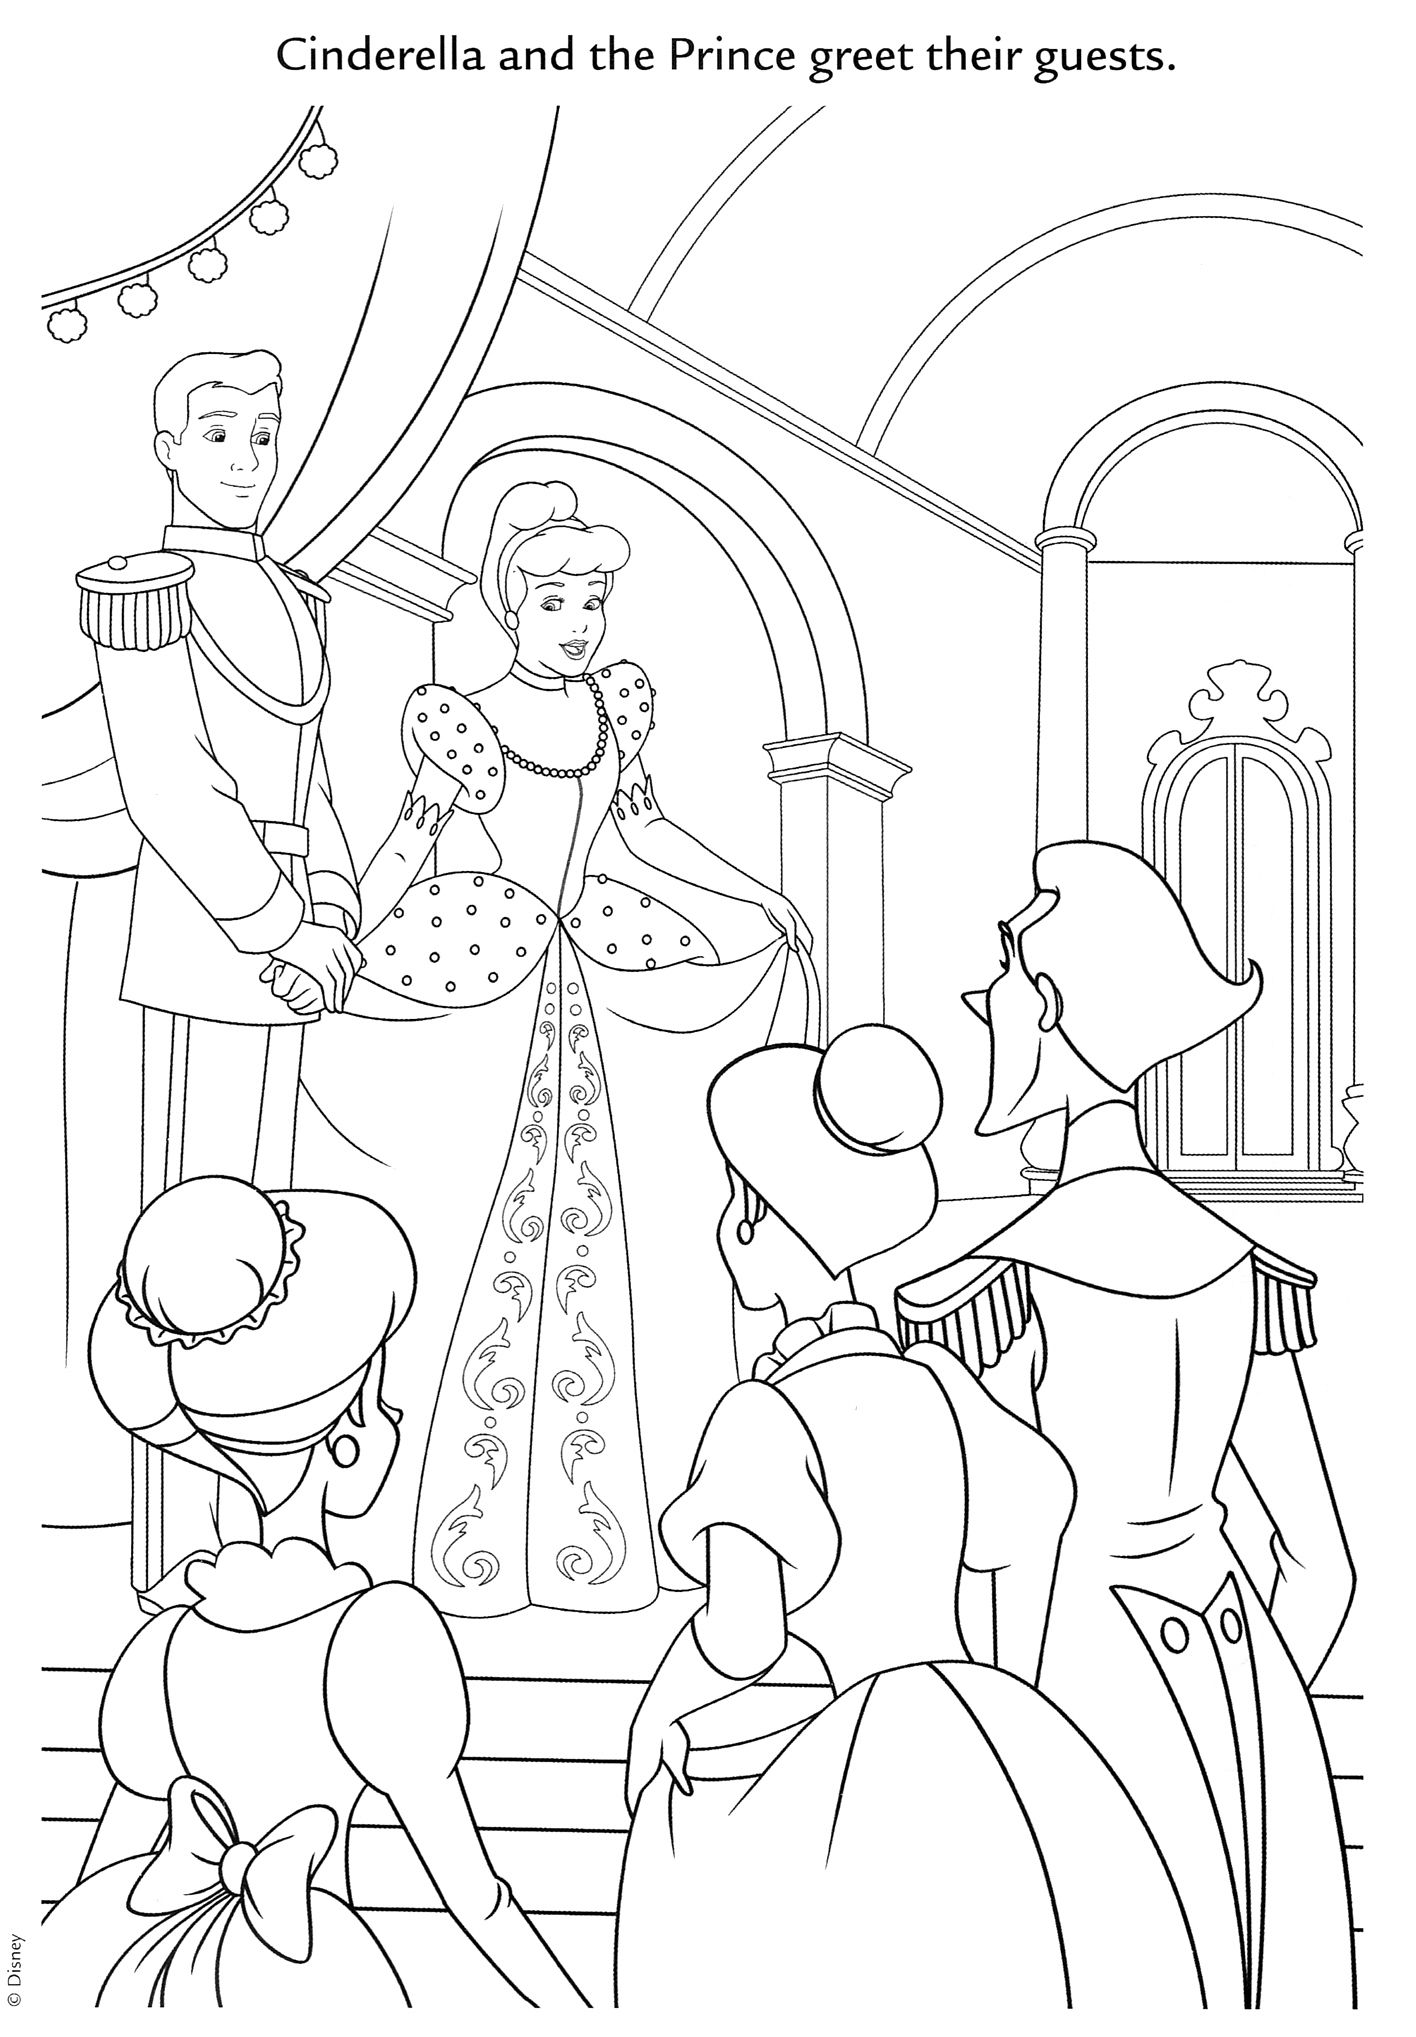 Pin by rhonda hester on kids coloring pages pinterest